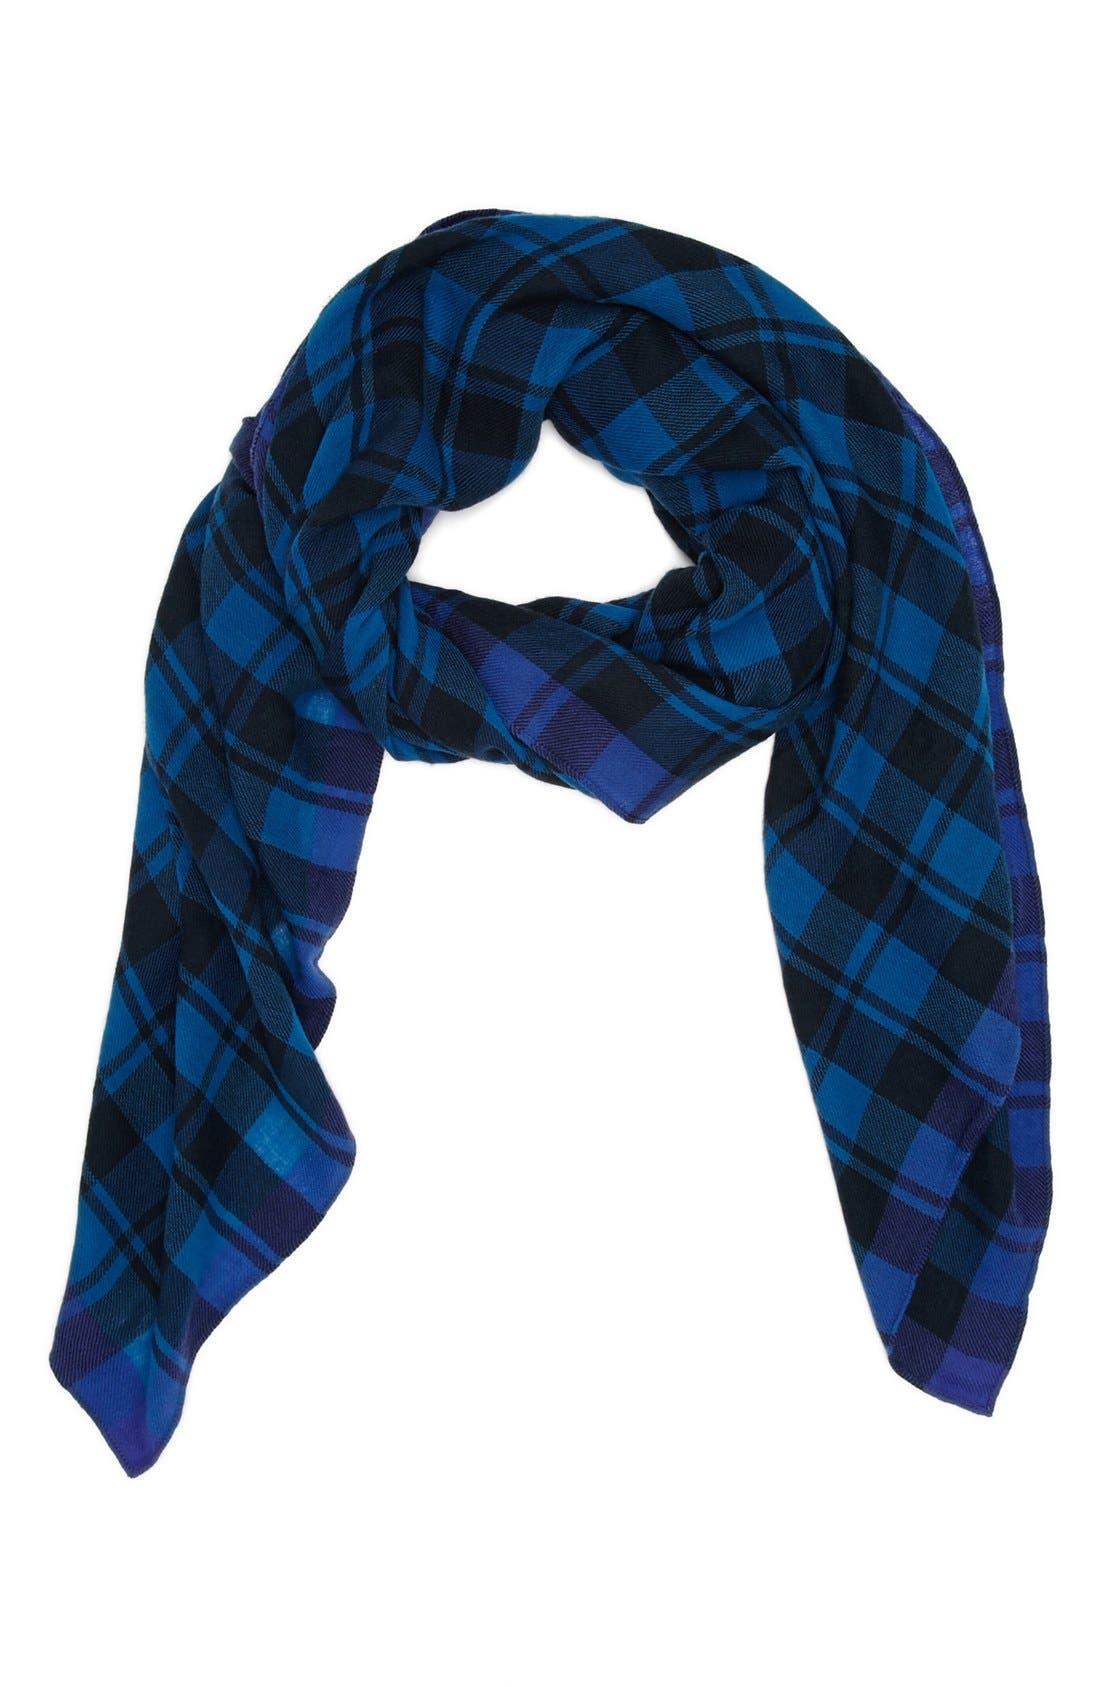 MARC JACOBS,                             MARC BY MARC JACOBS Plaid Scarf,                             Main thumbnail 1, color,                             400